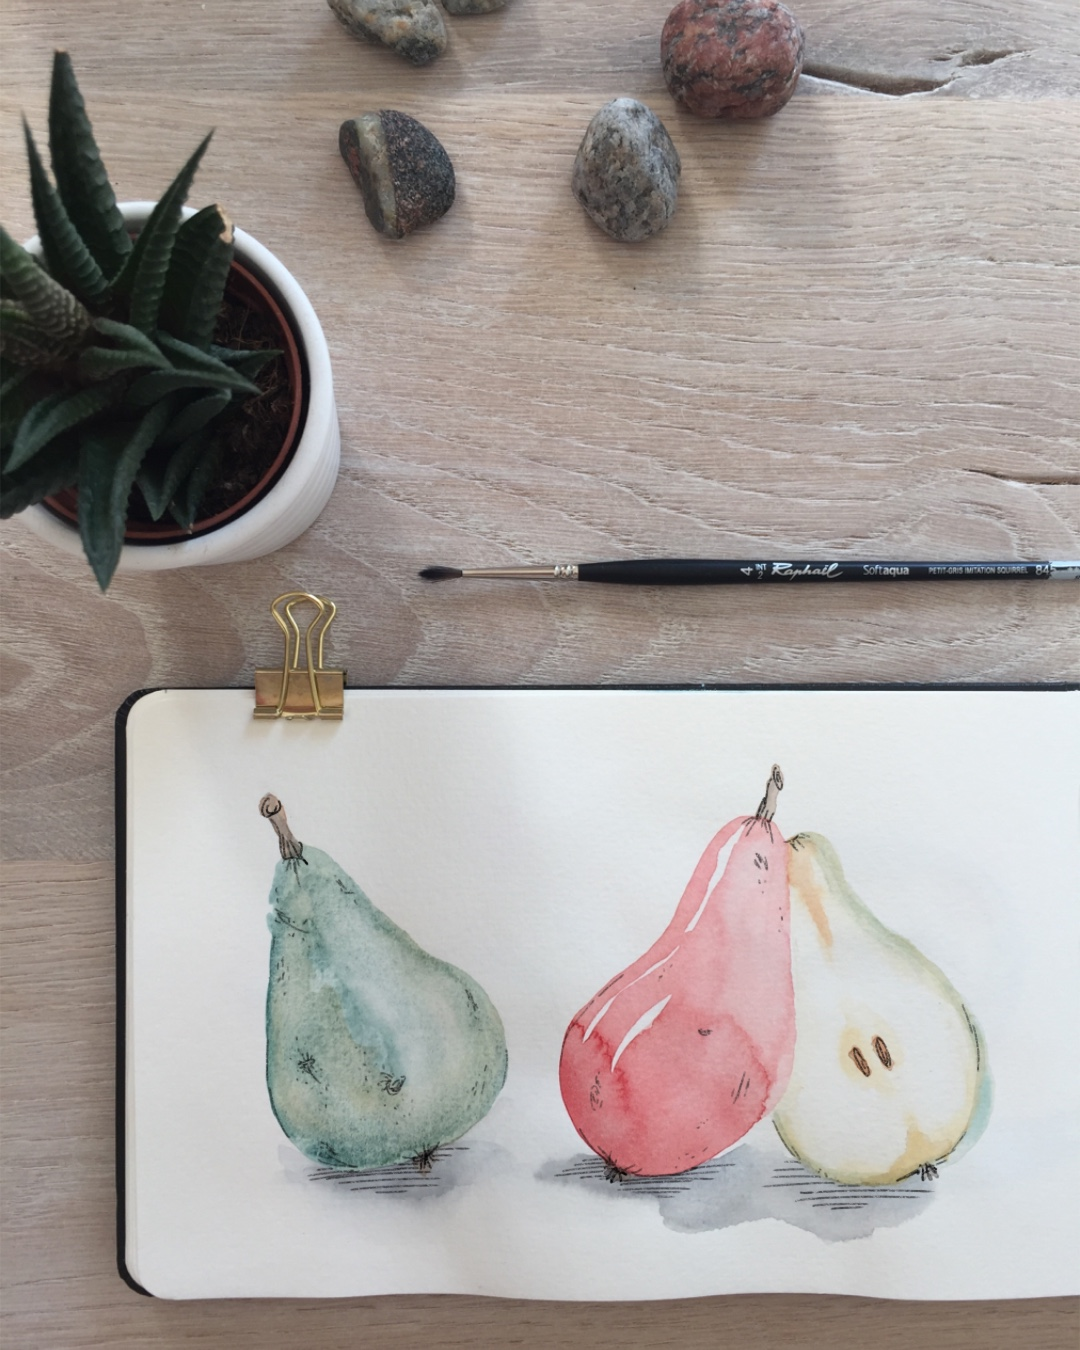 Watercolour pears in a sketchbook.